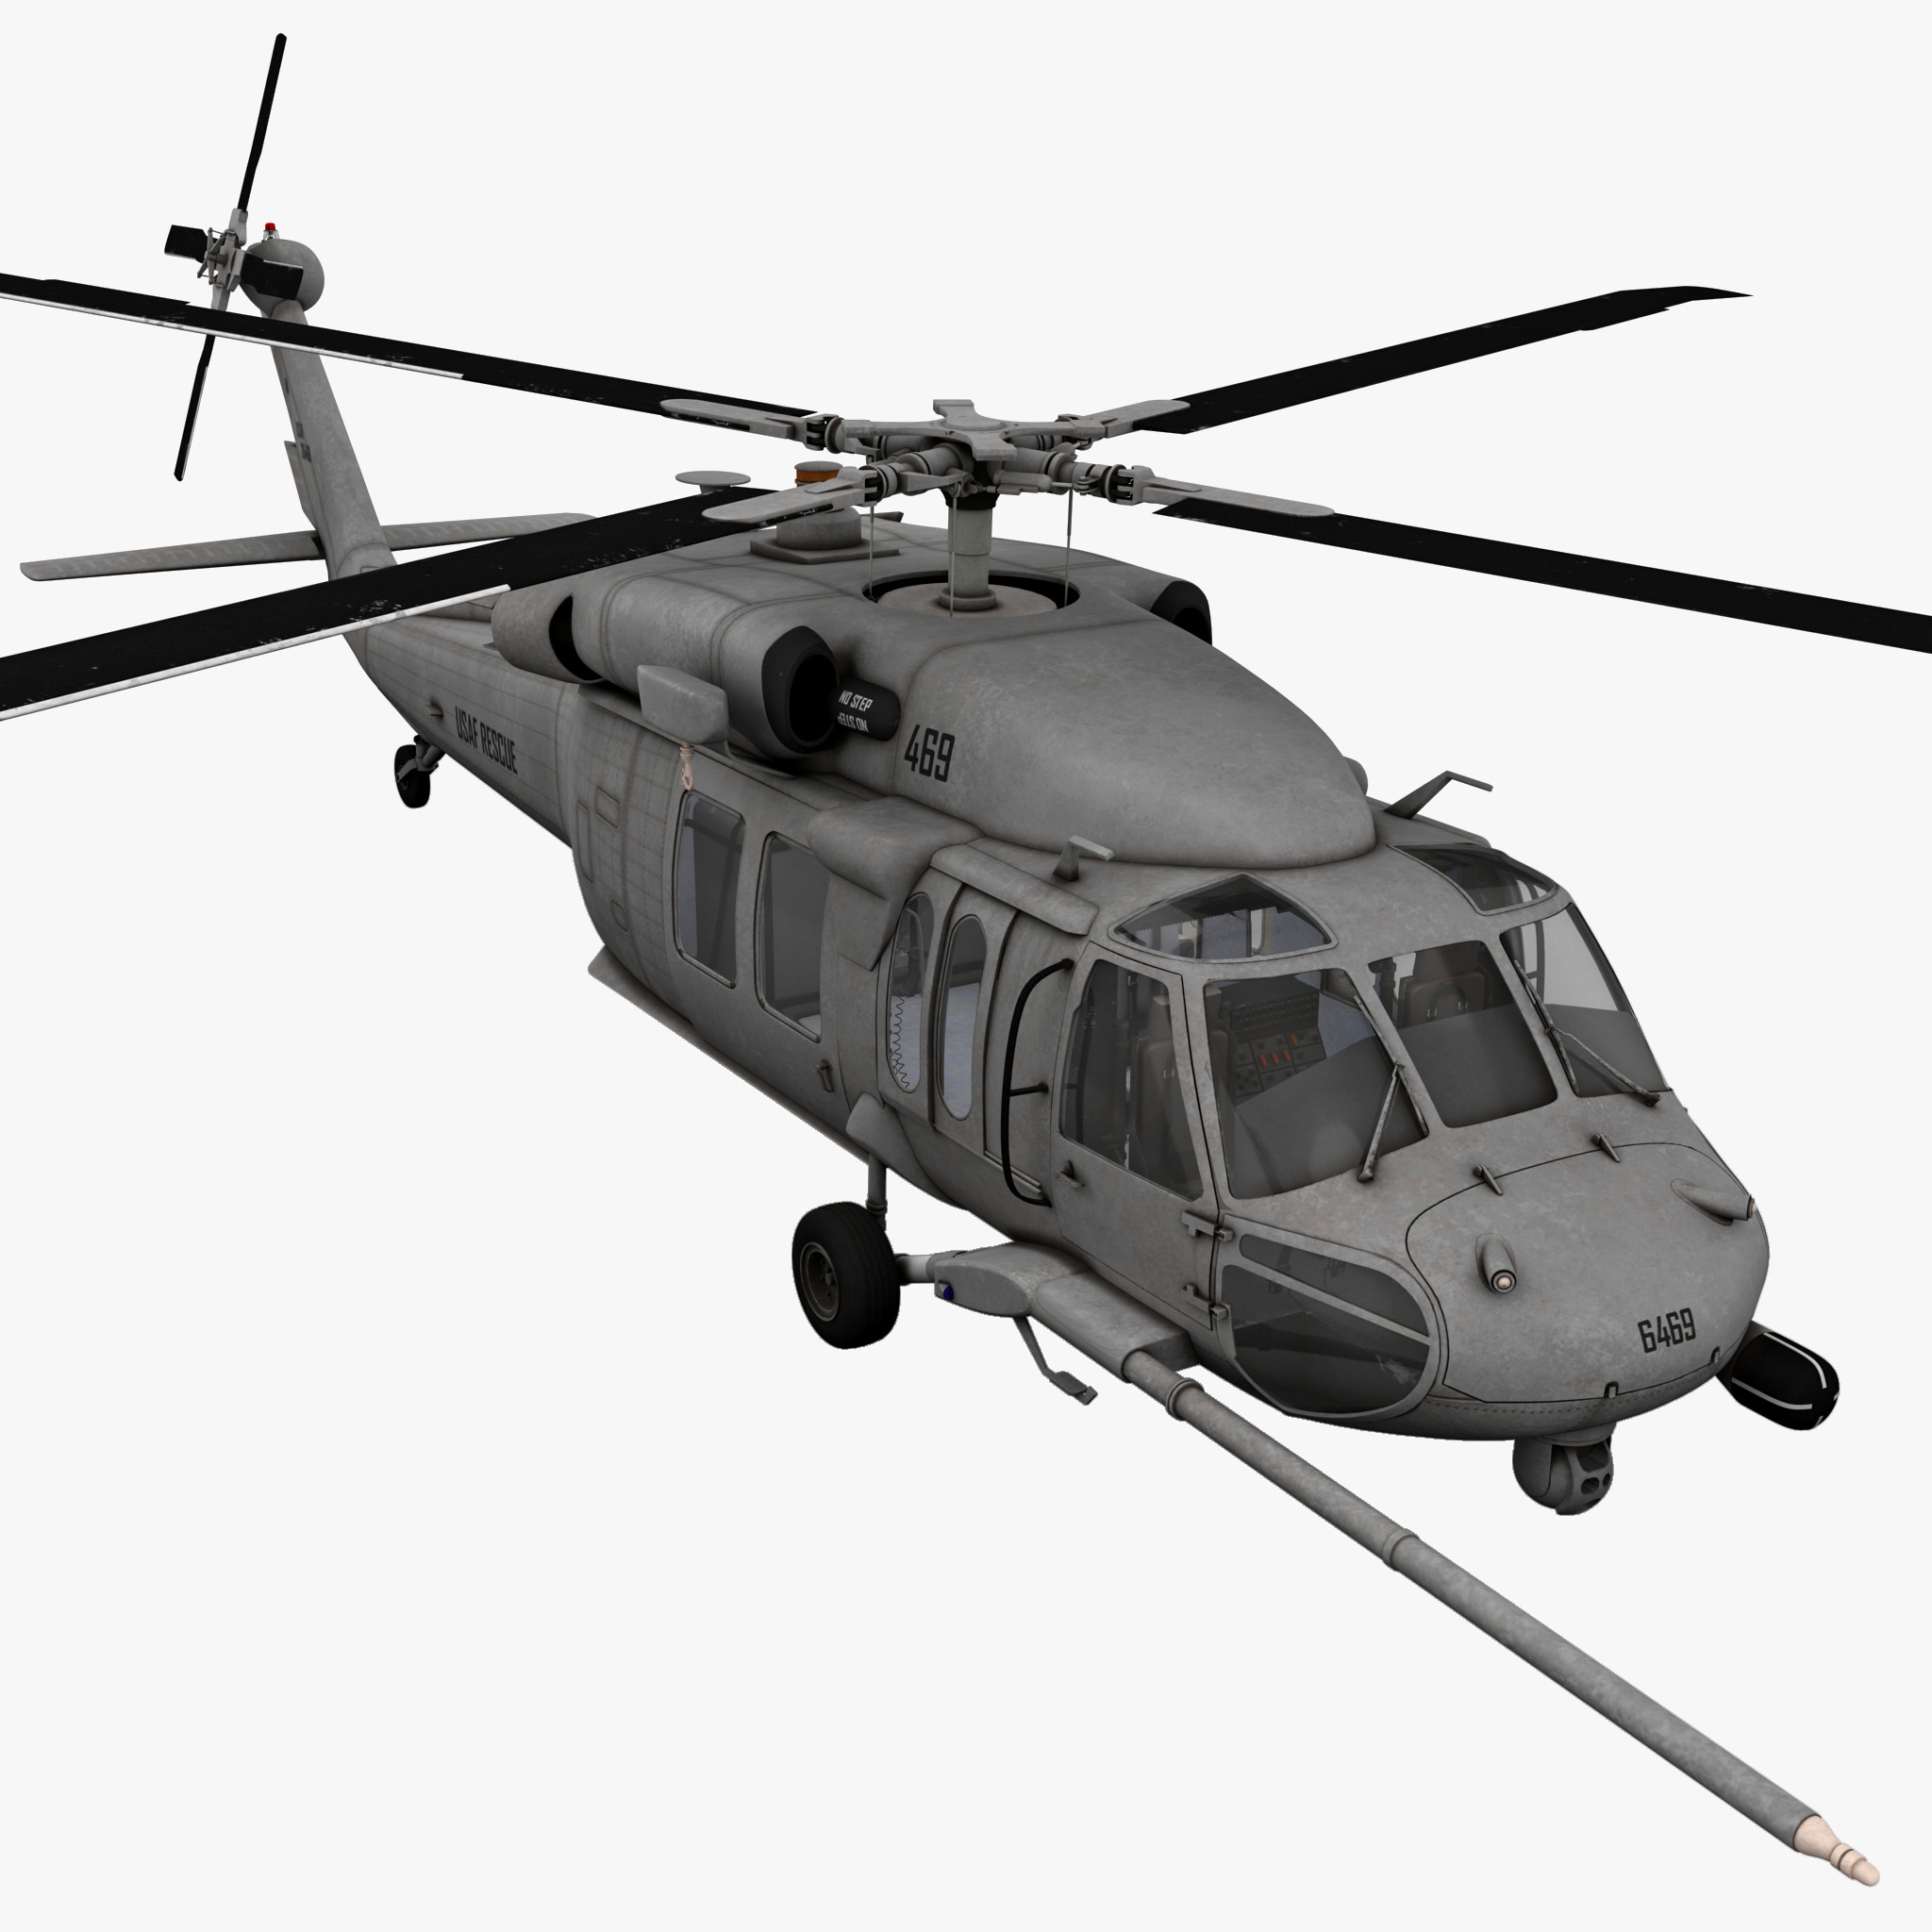 HH-60 Pave Hawk Rigged_1.jpg